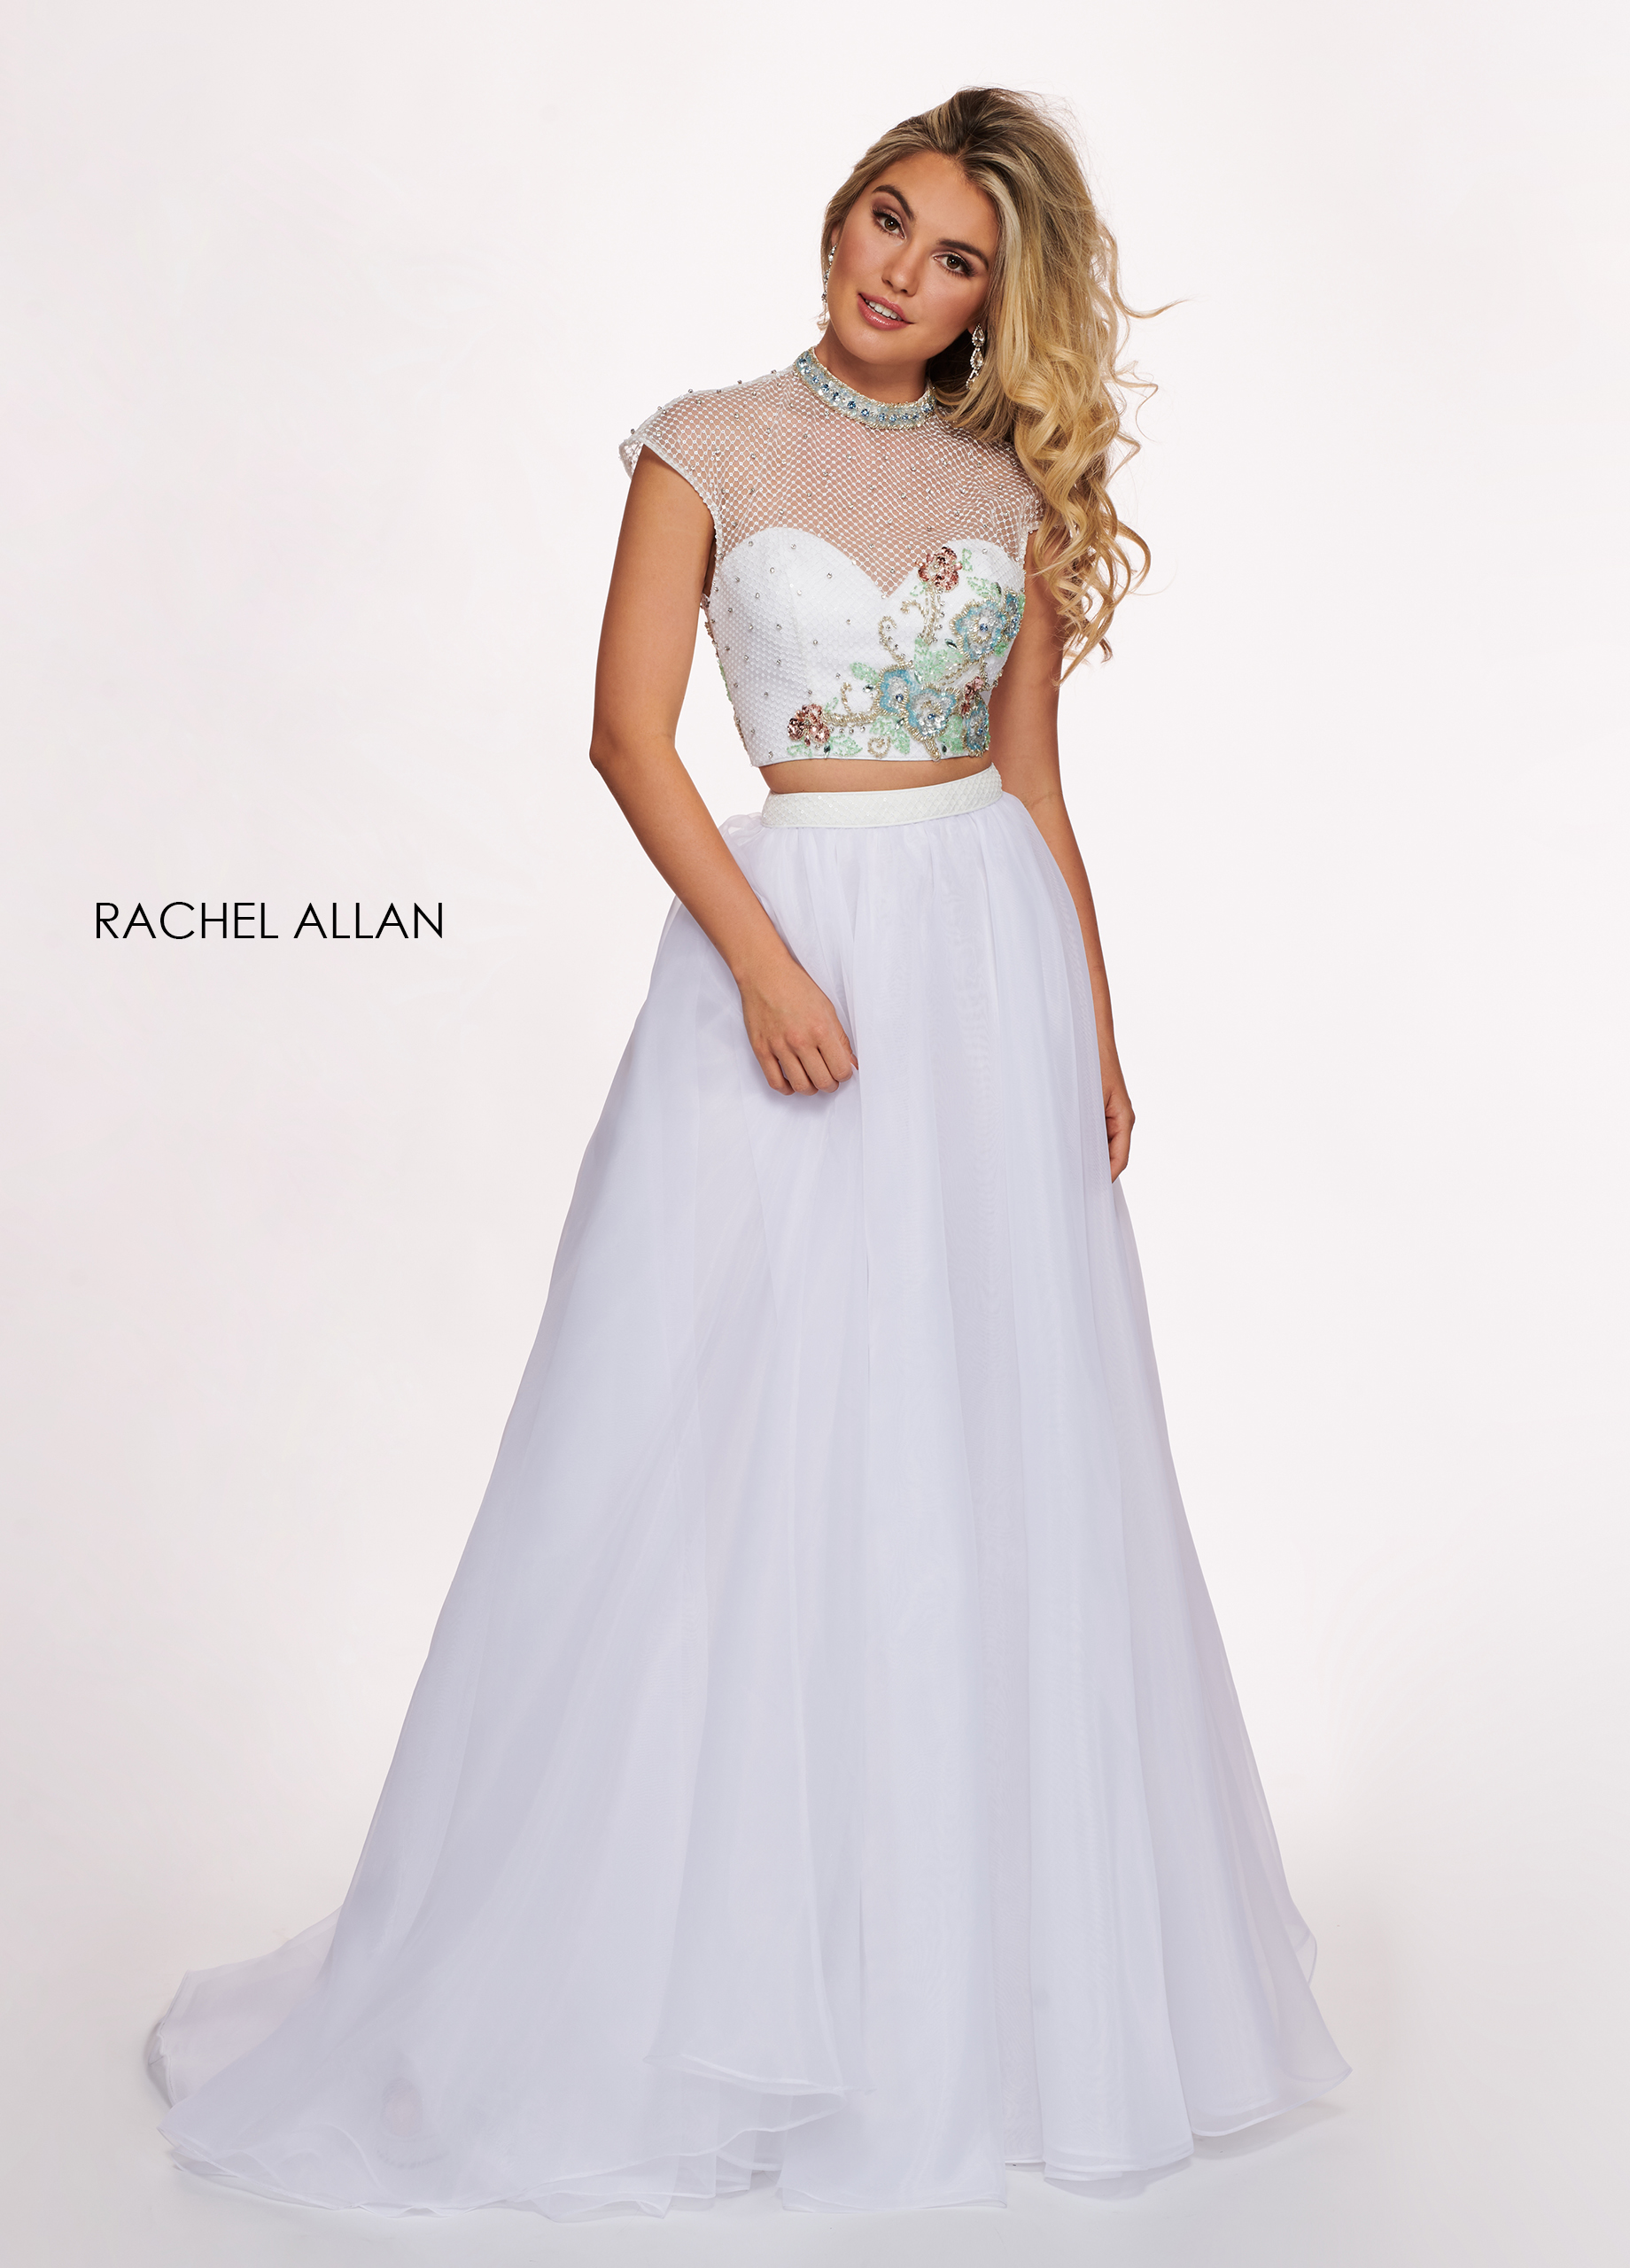 High Neckline A-Line Prom Dresses in White Color